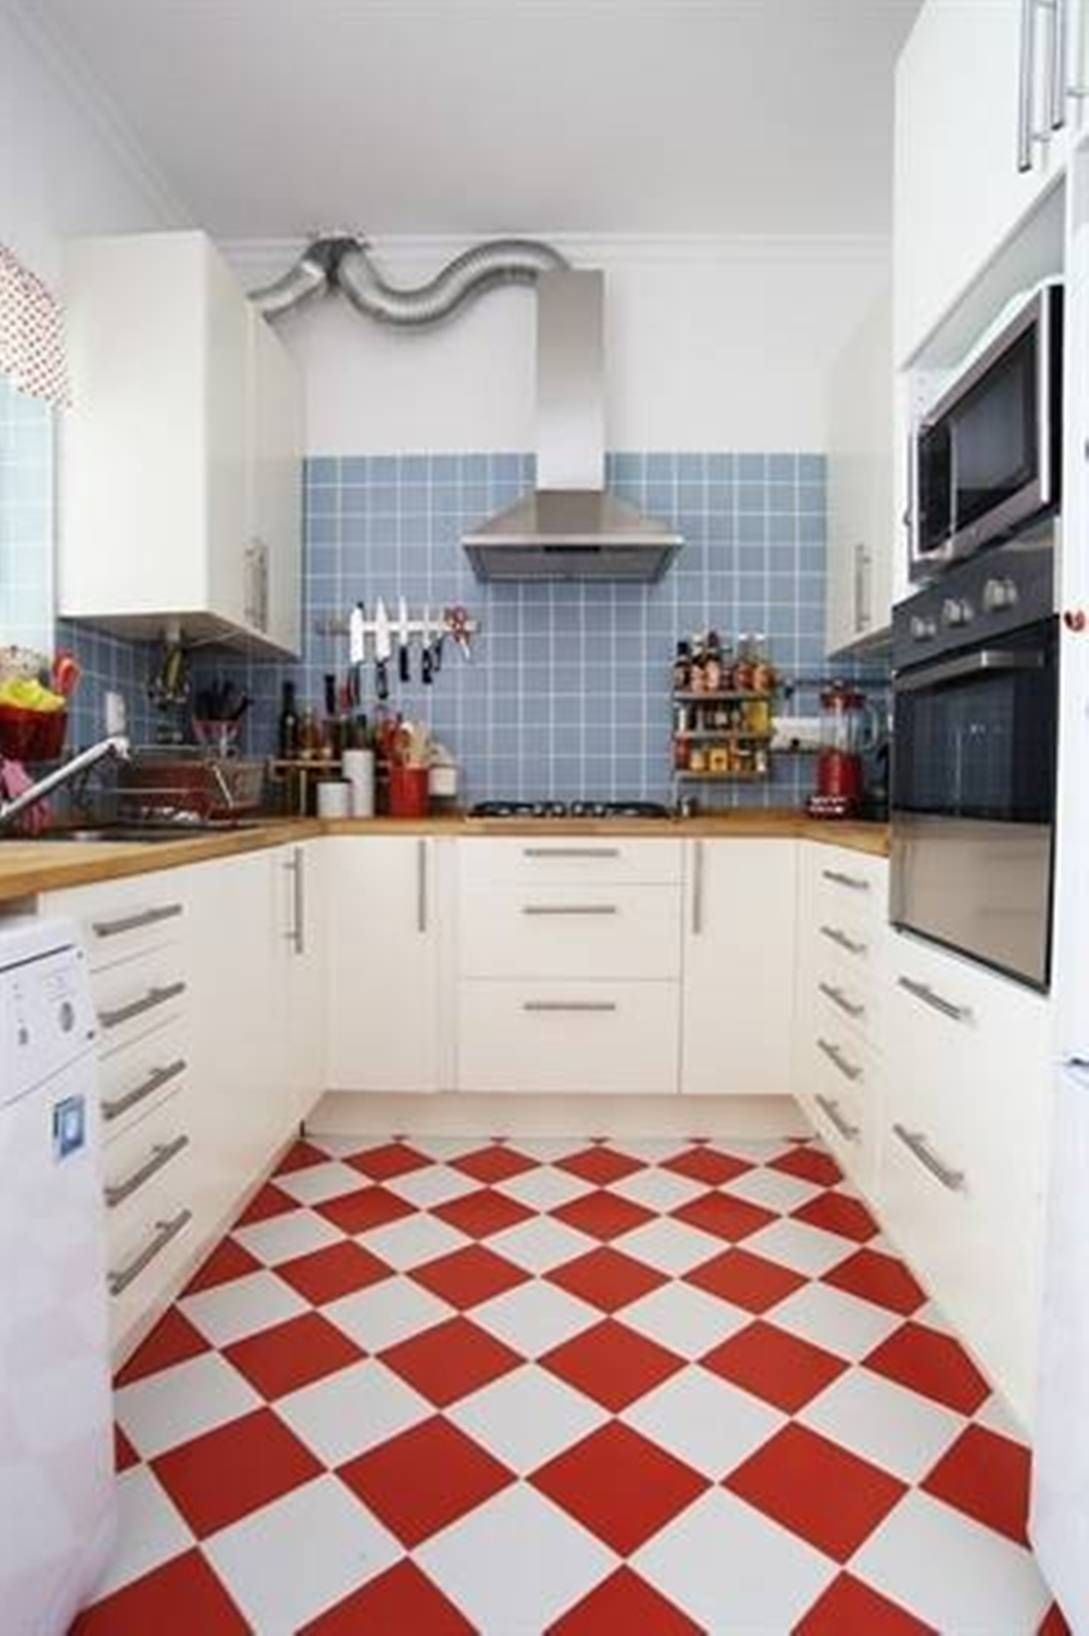 Checkerboard Kitchen Floor Galley Kitchen Floor Plans Checkered White And Red Floor